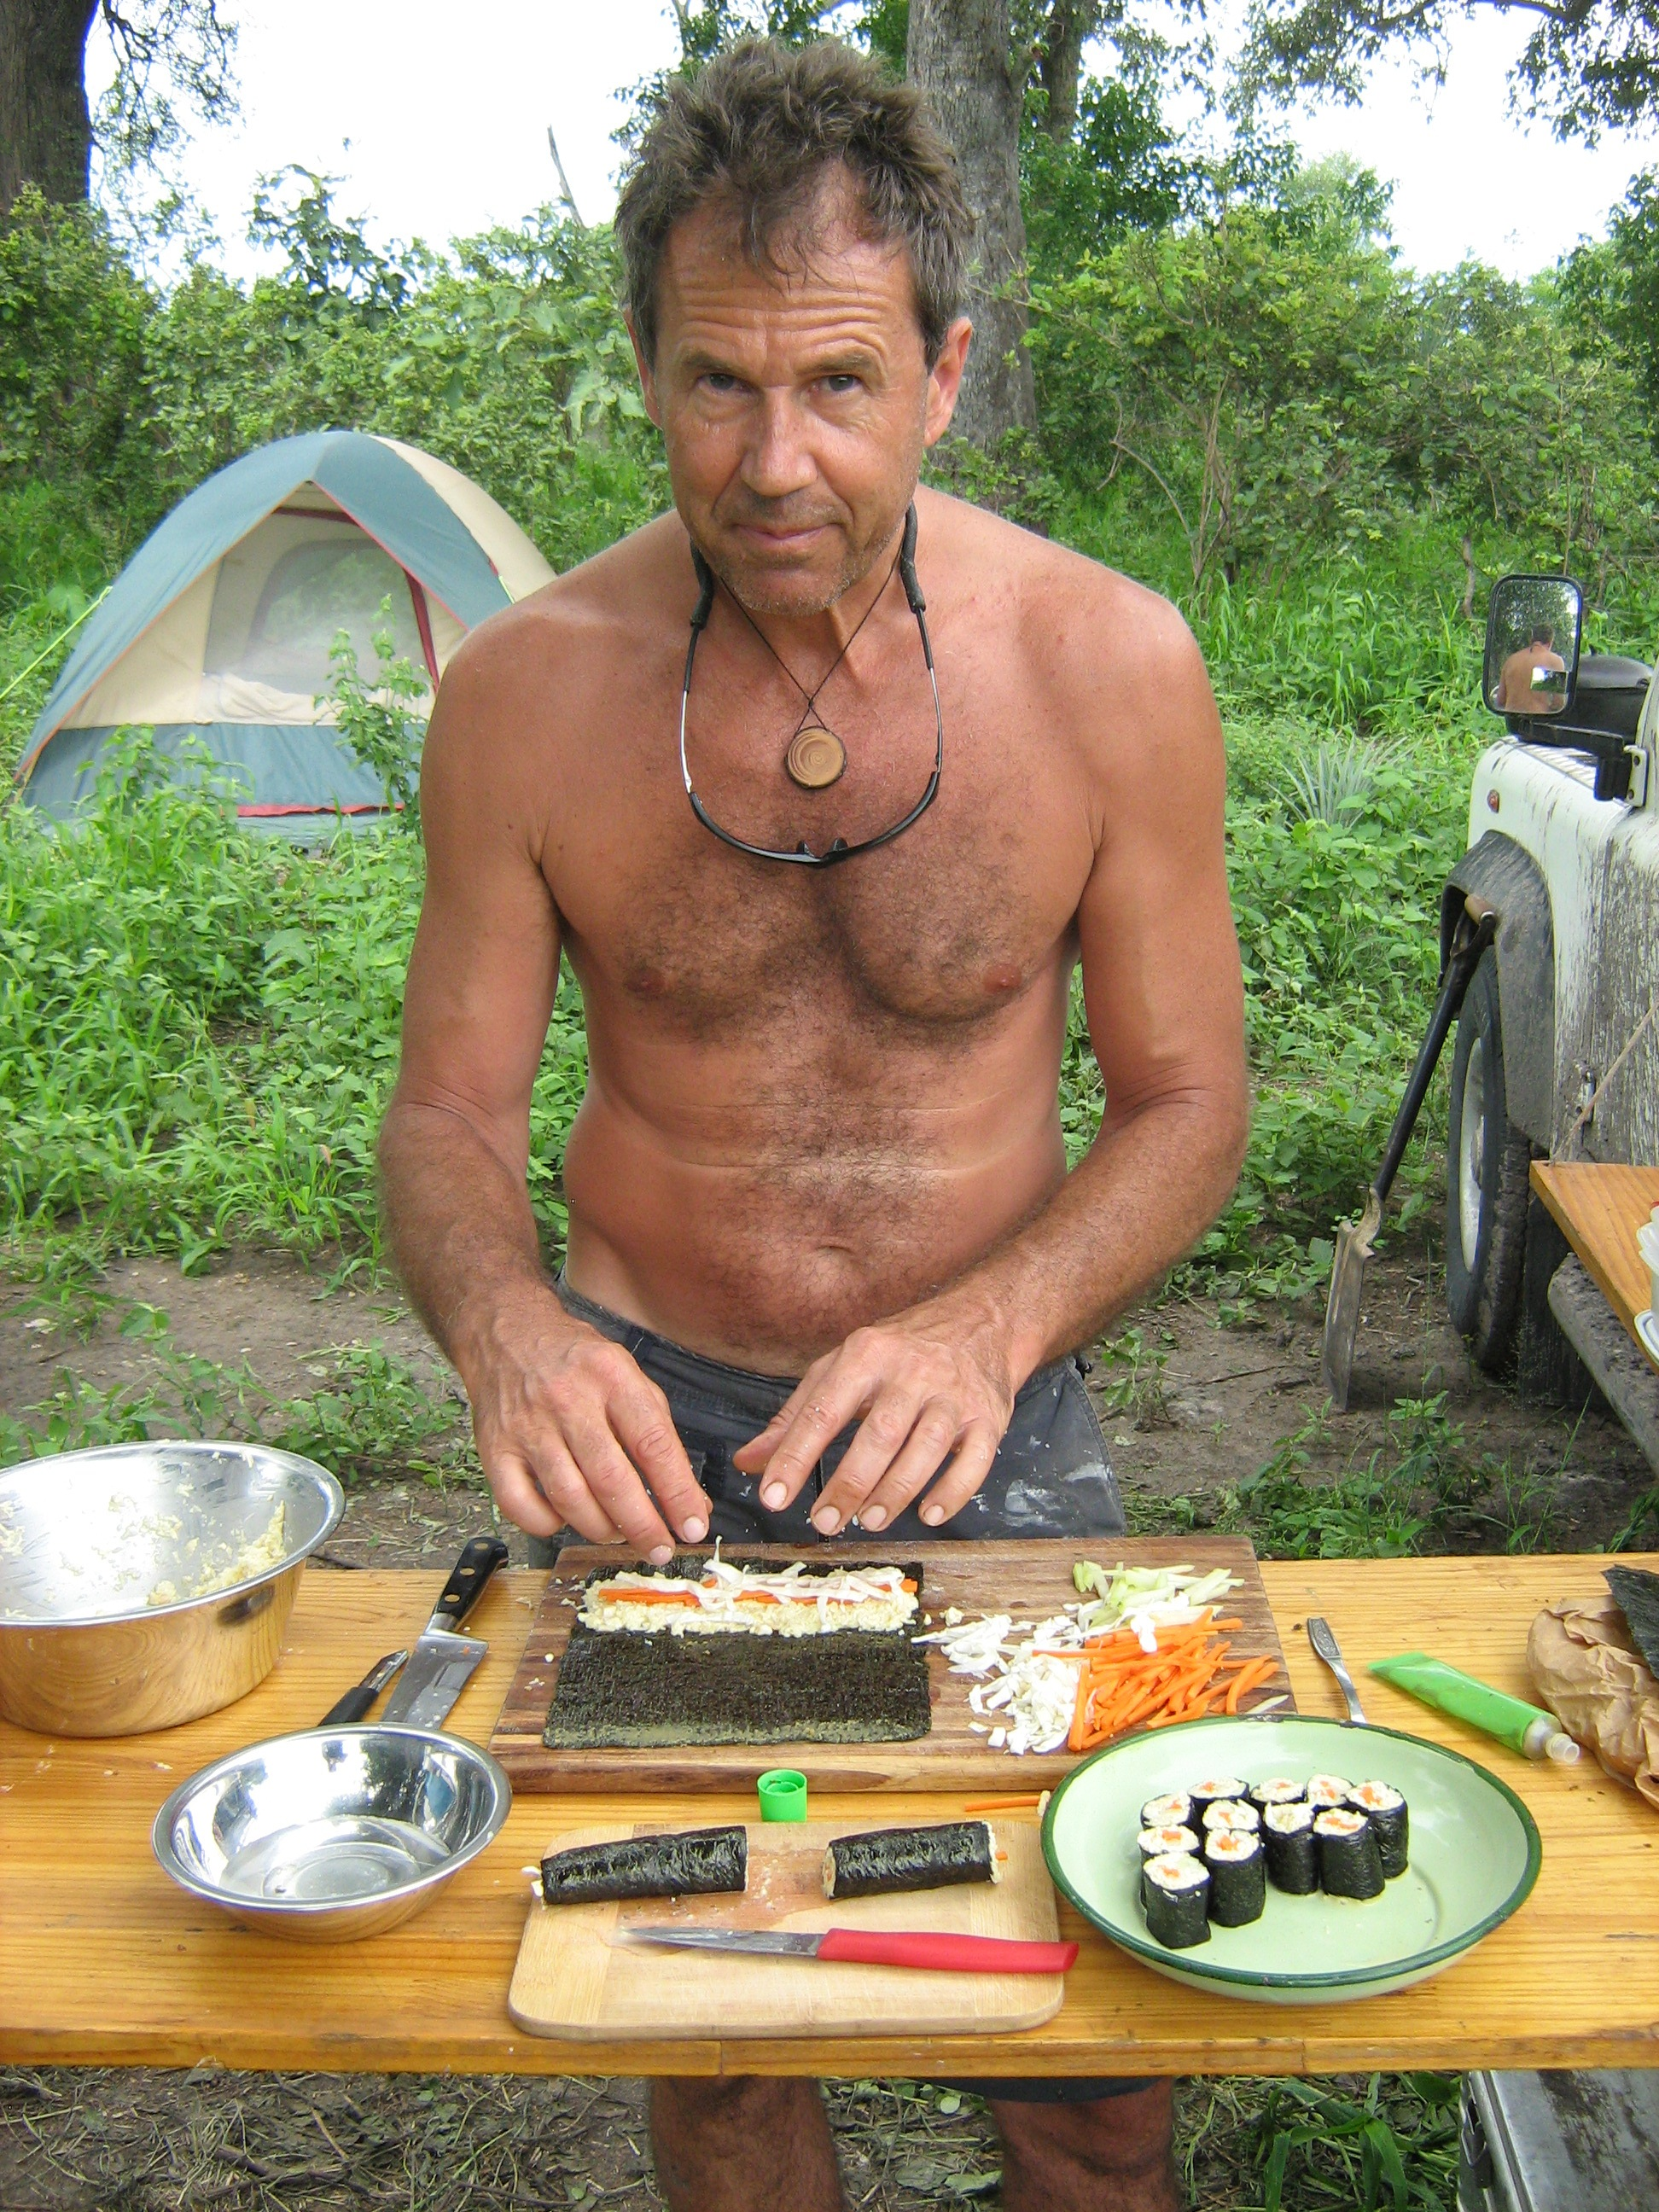 Vegan Sushi ala Marc in the bush